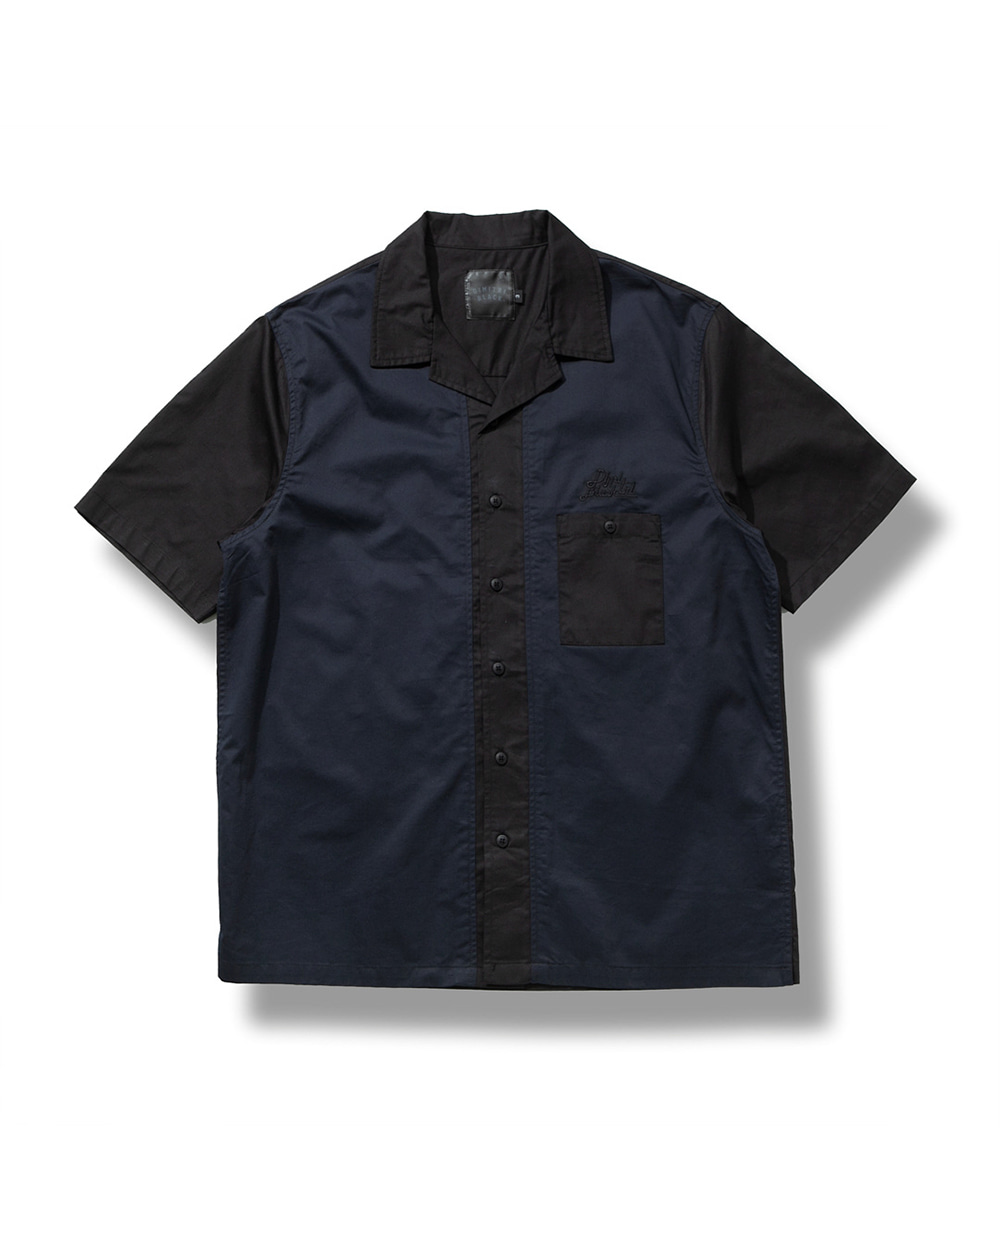 LUBALIN BOWLING SHIRTS NAVY